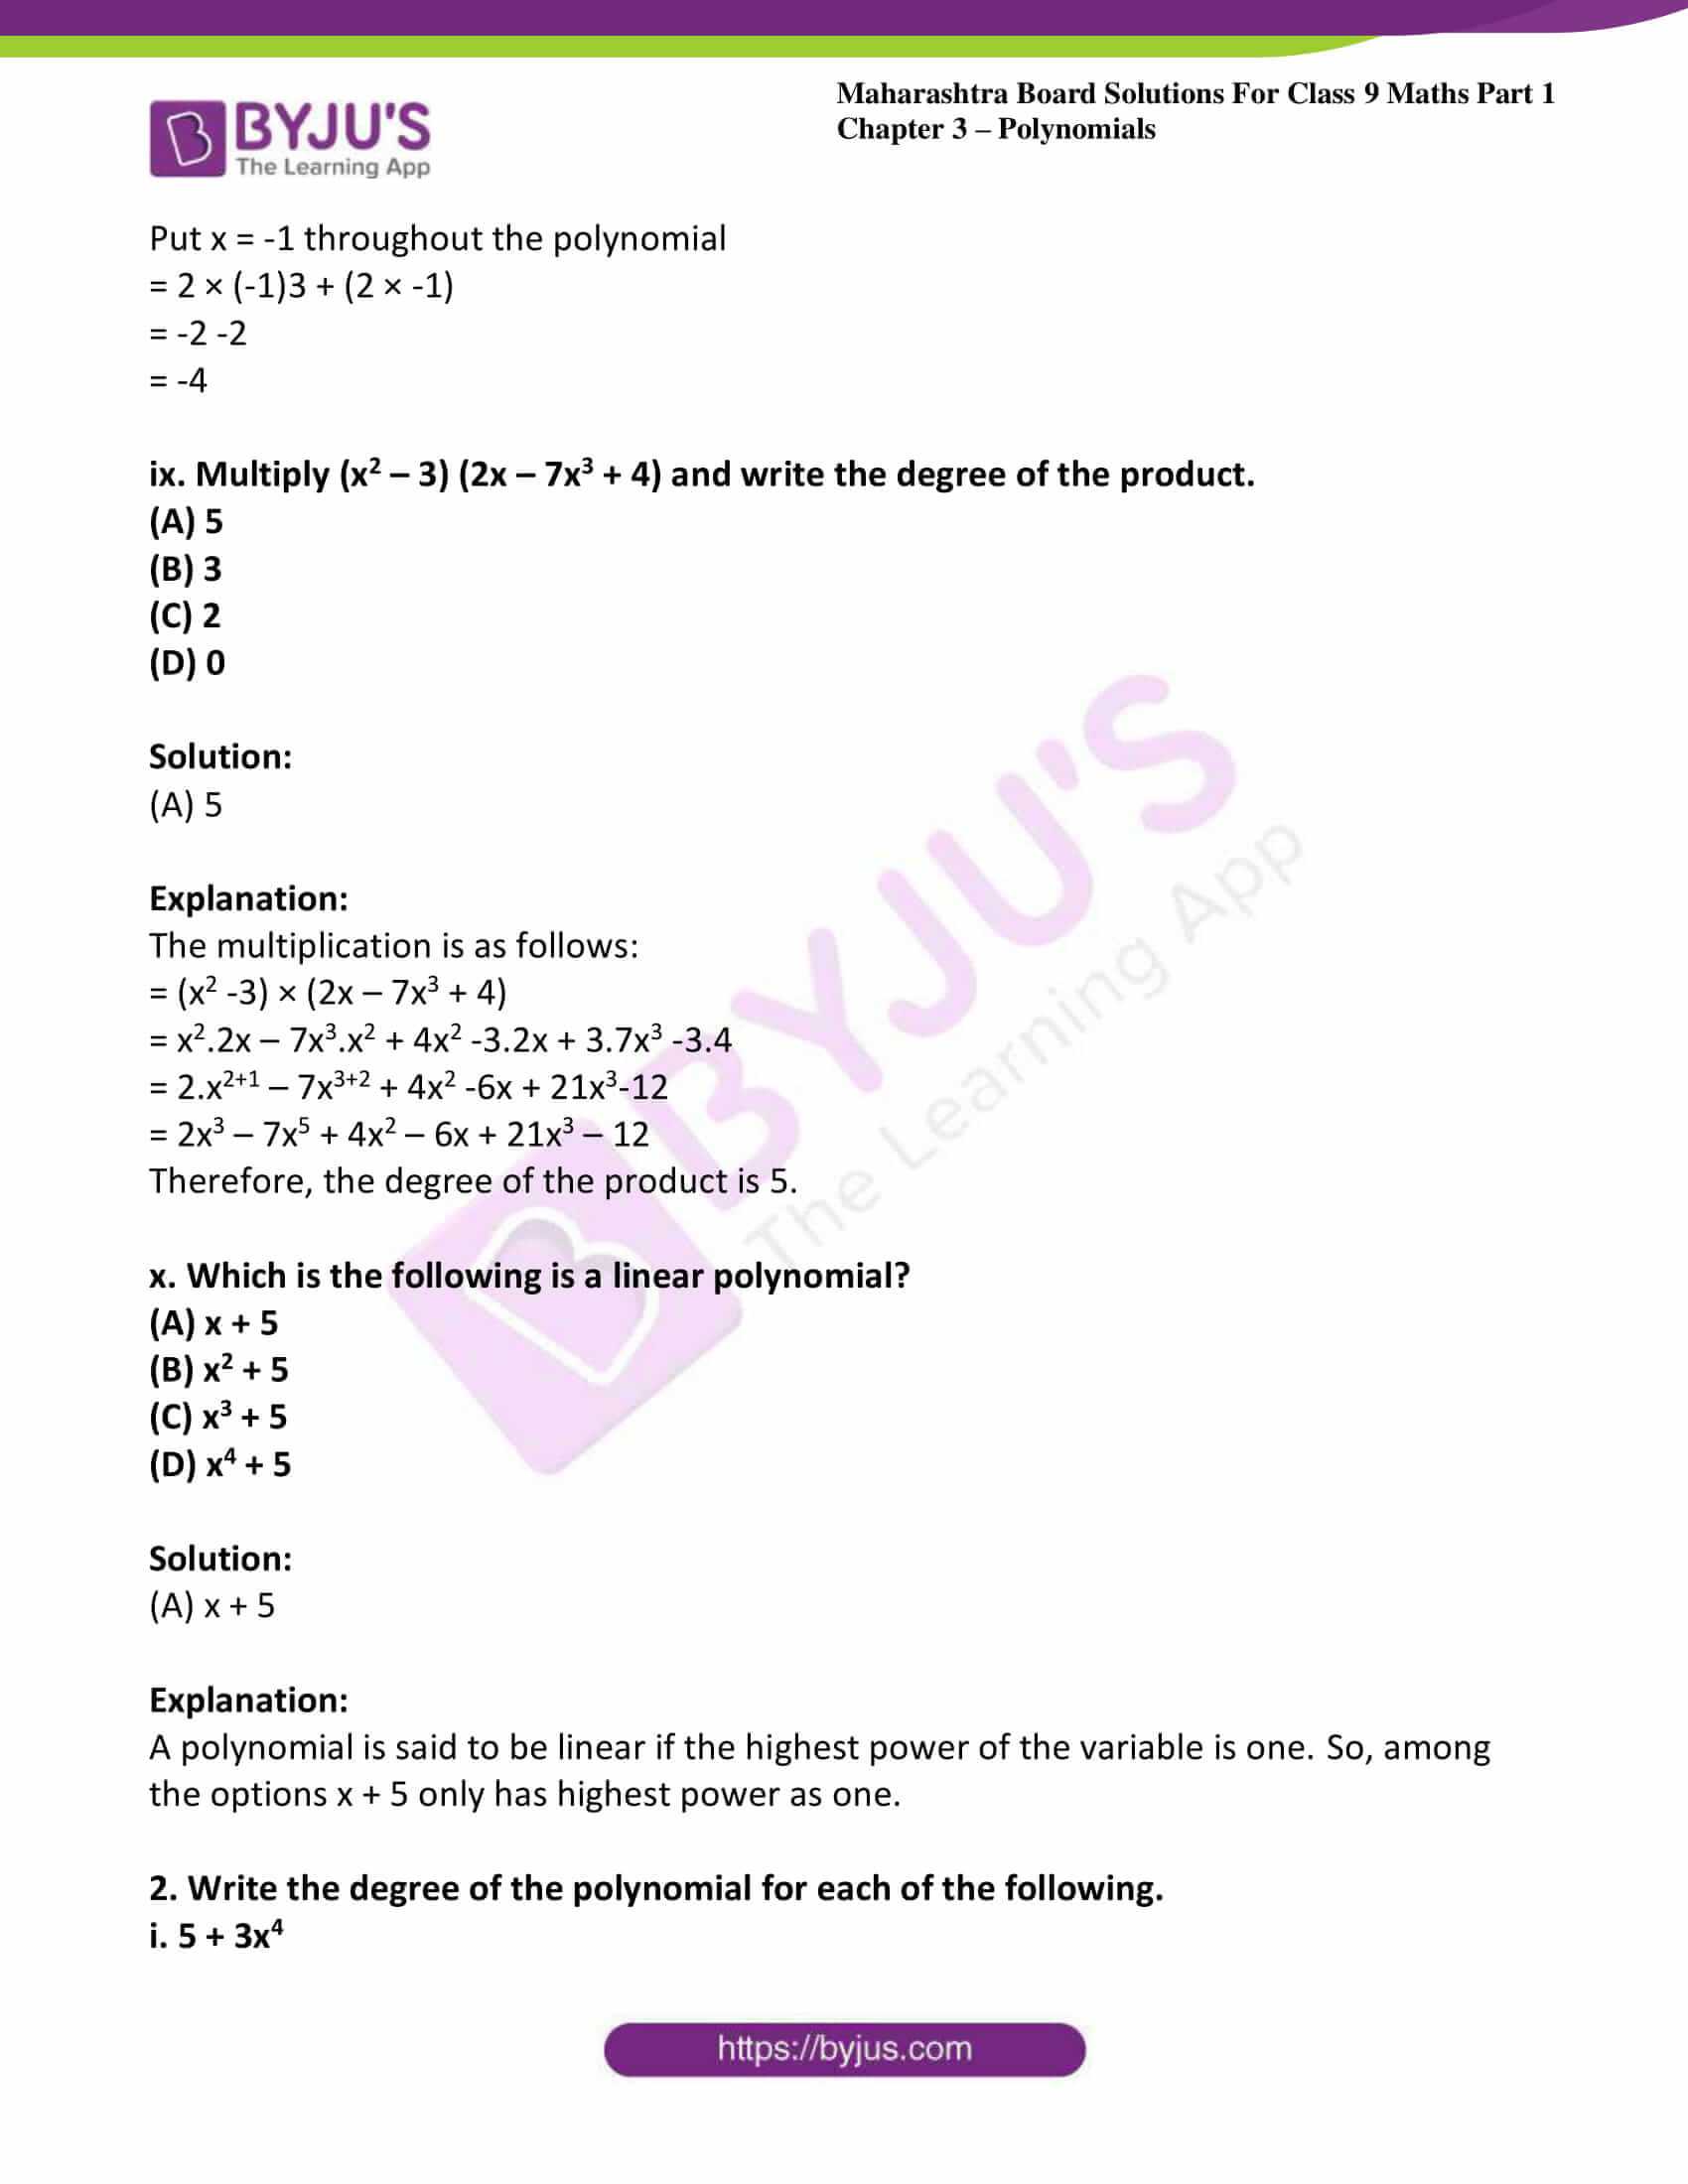 msbshse sol class 9 maths part 1 chapter 3 polynomials 32